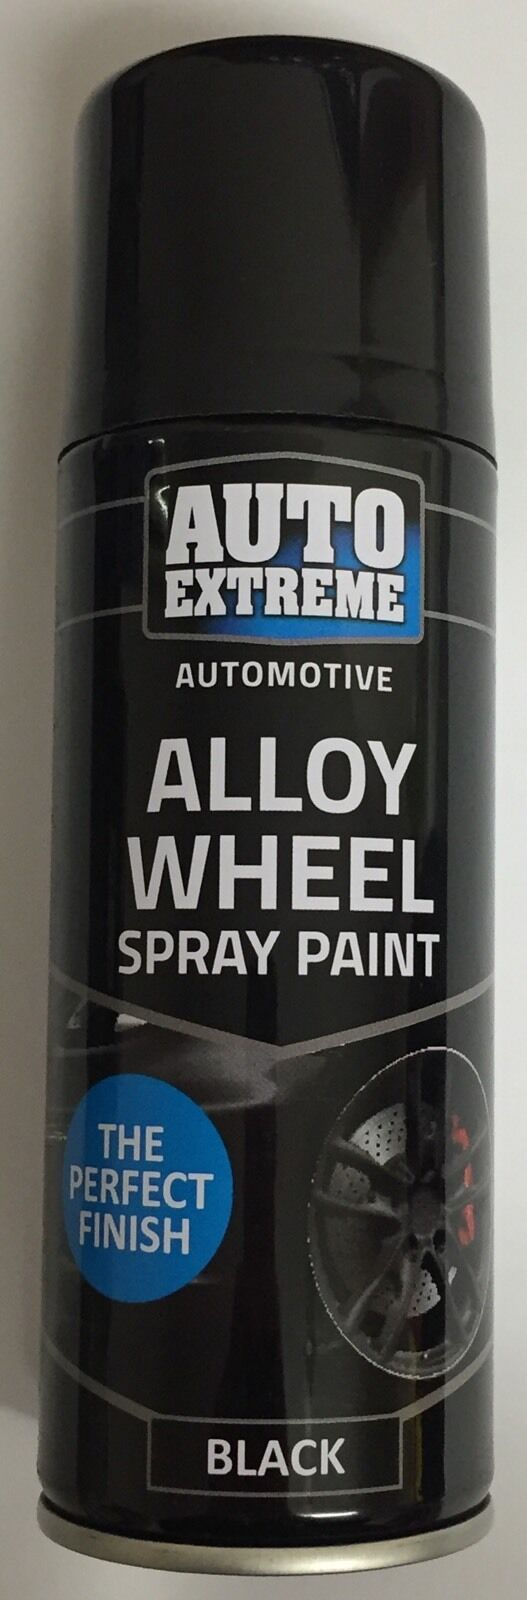 black satin alloy wheel spray can restorer car bike auto. Black Bedroom Furniture Sets. Home Design Ideas